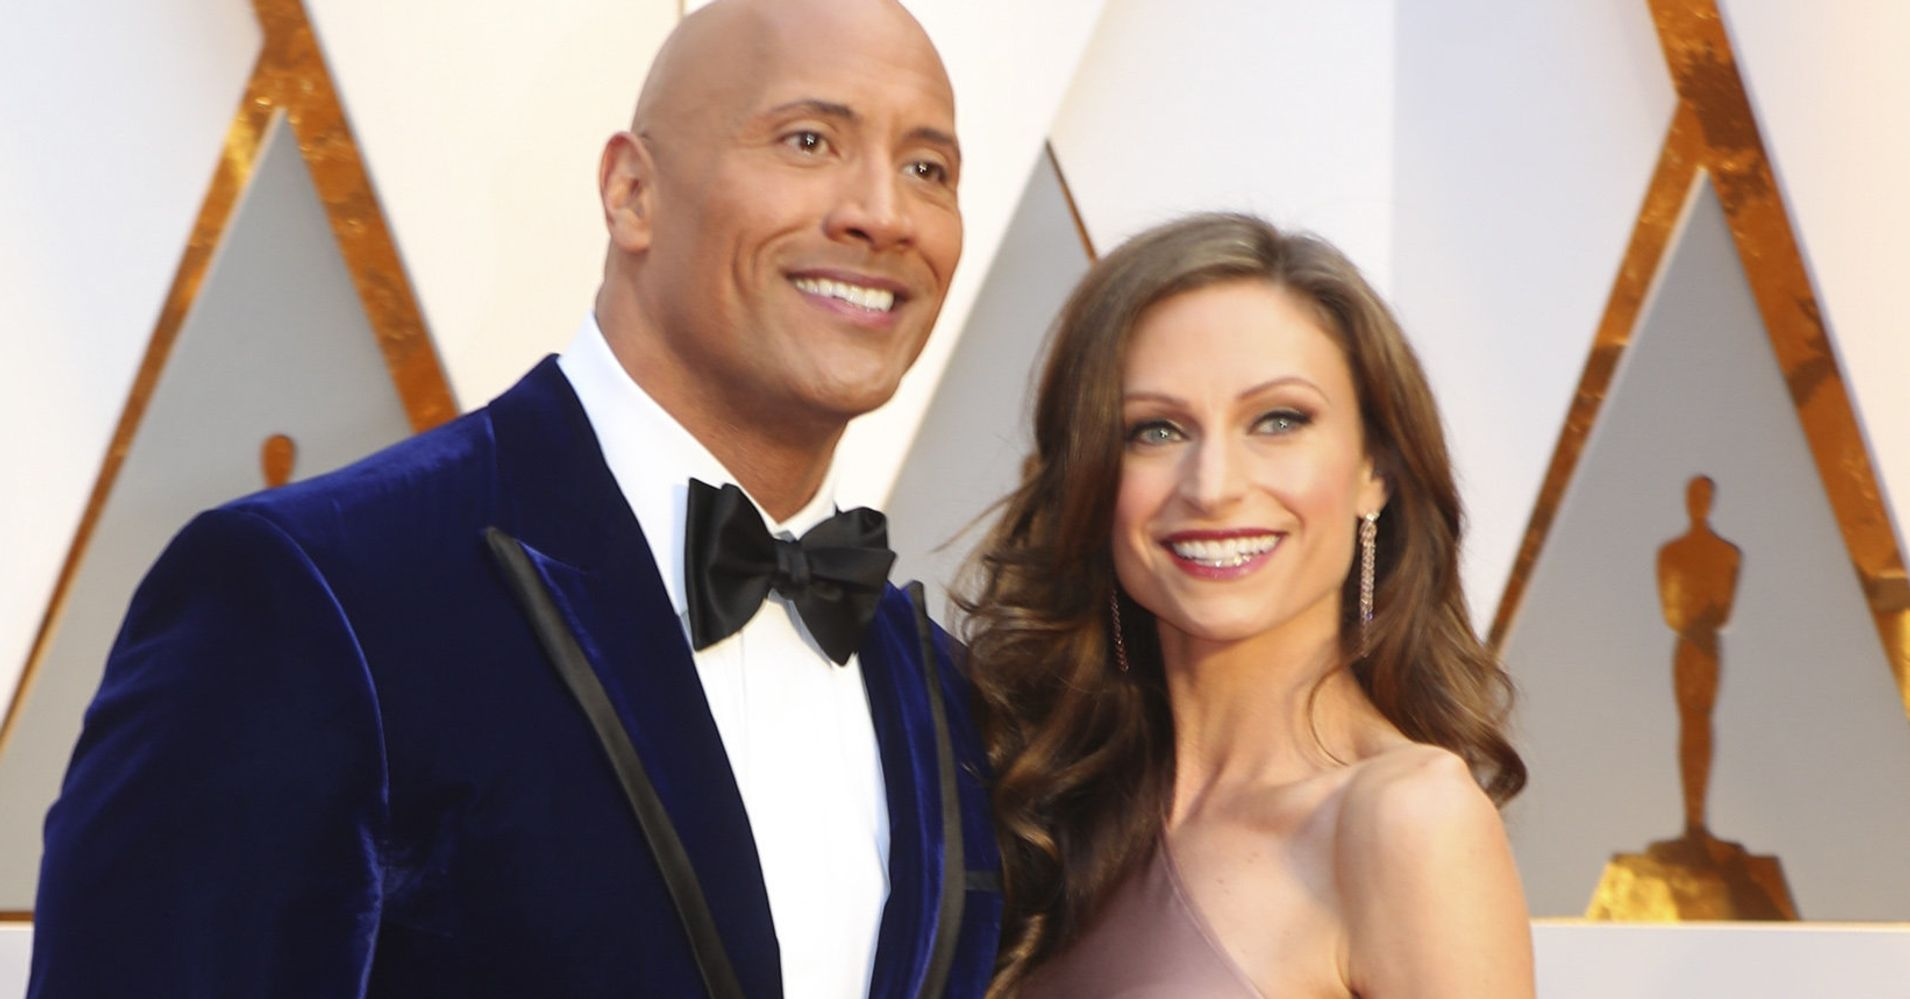 Dwayne 'The Rock' Johnson Announces New Baby News In Cutest Way